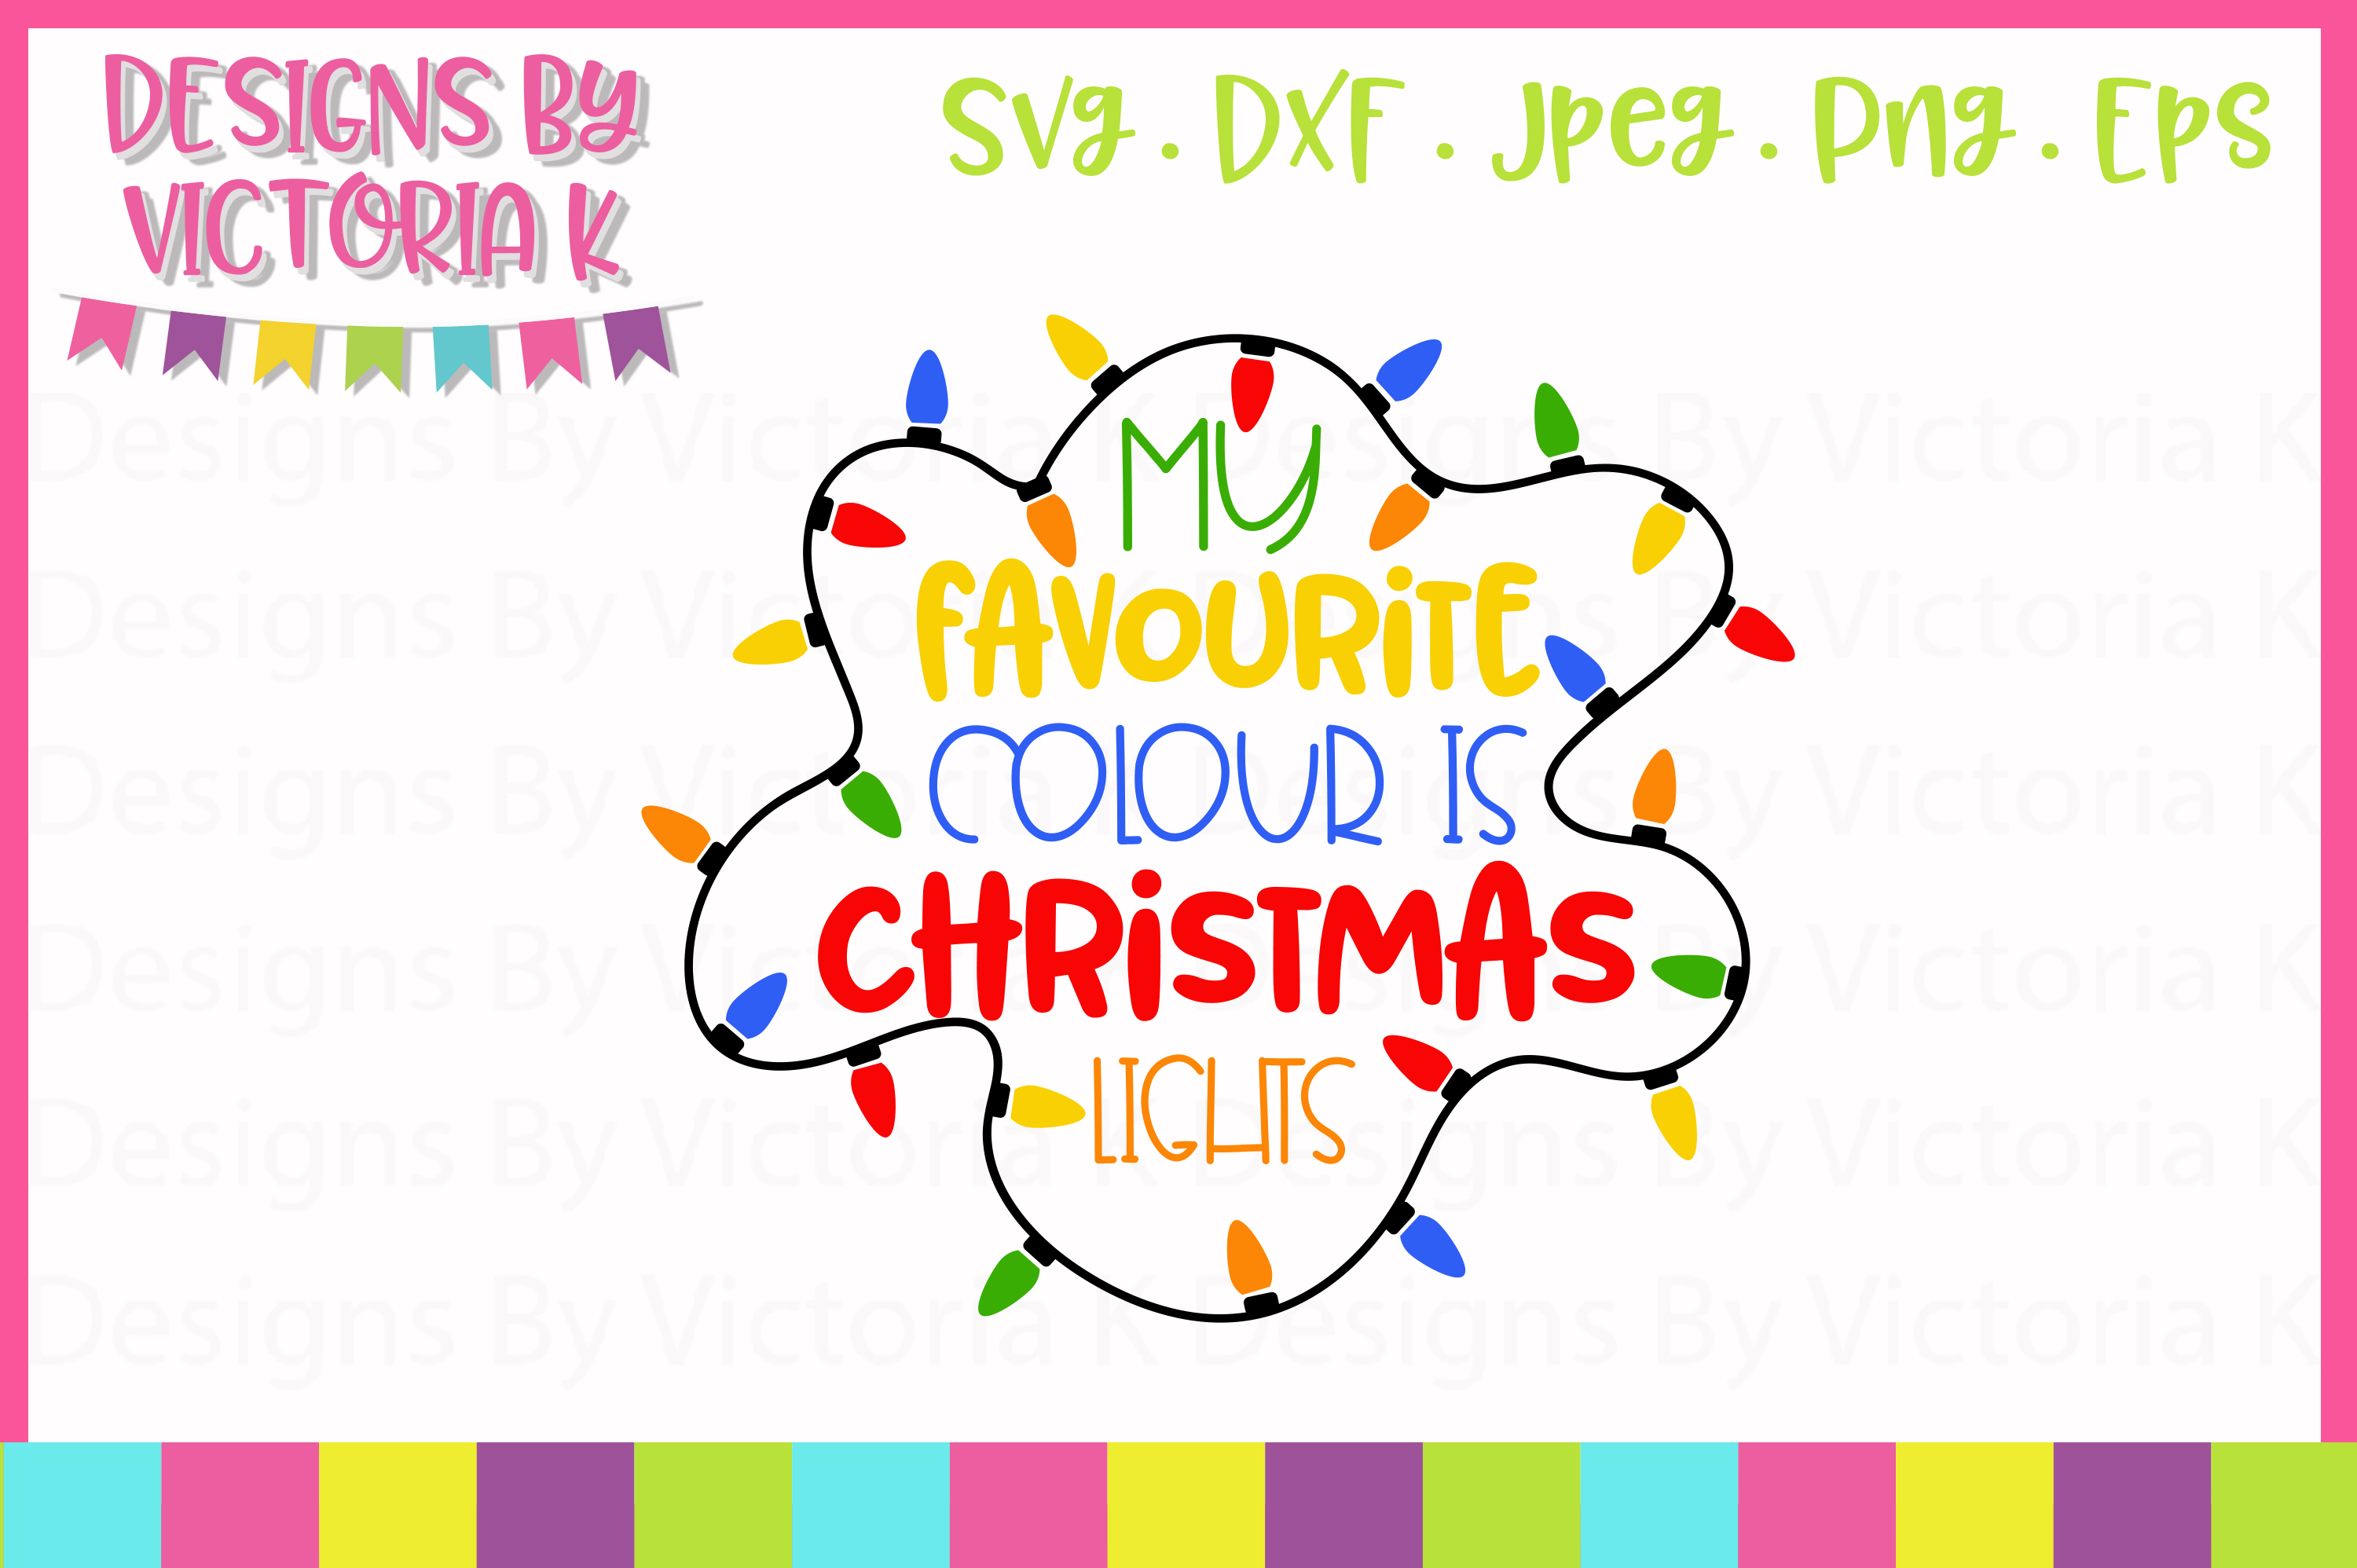 5 Christmas lights designs, SVG, DXF example image 2